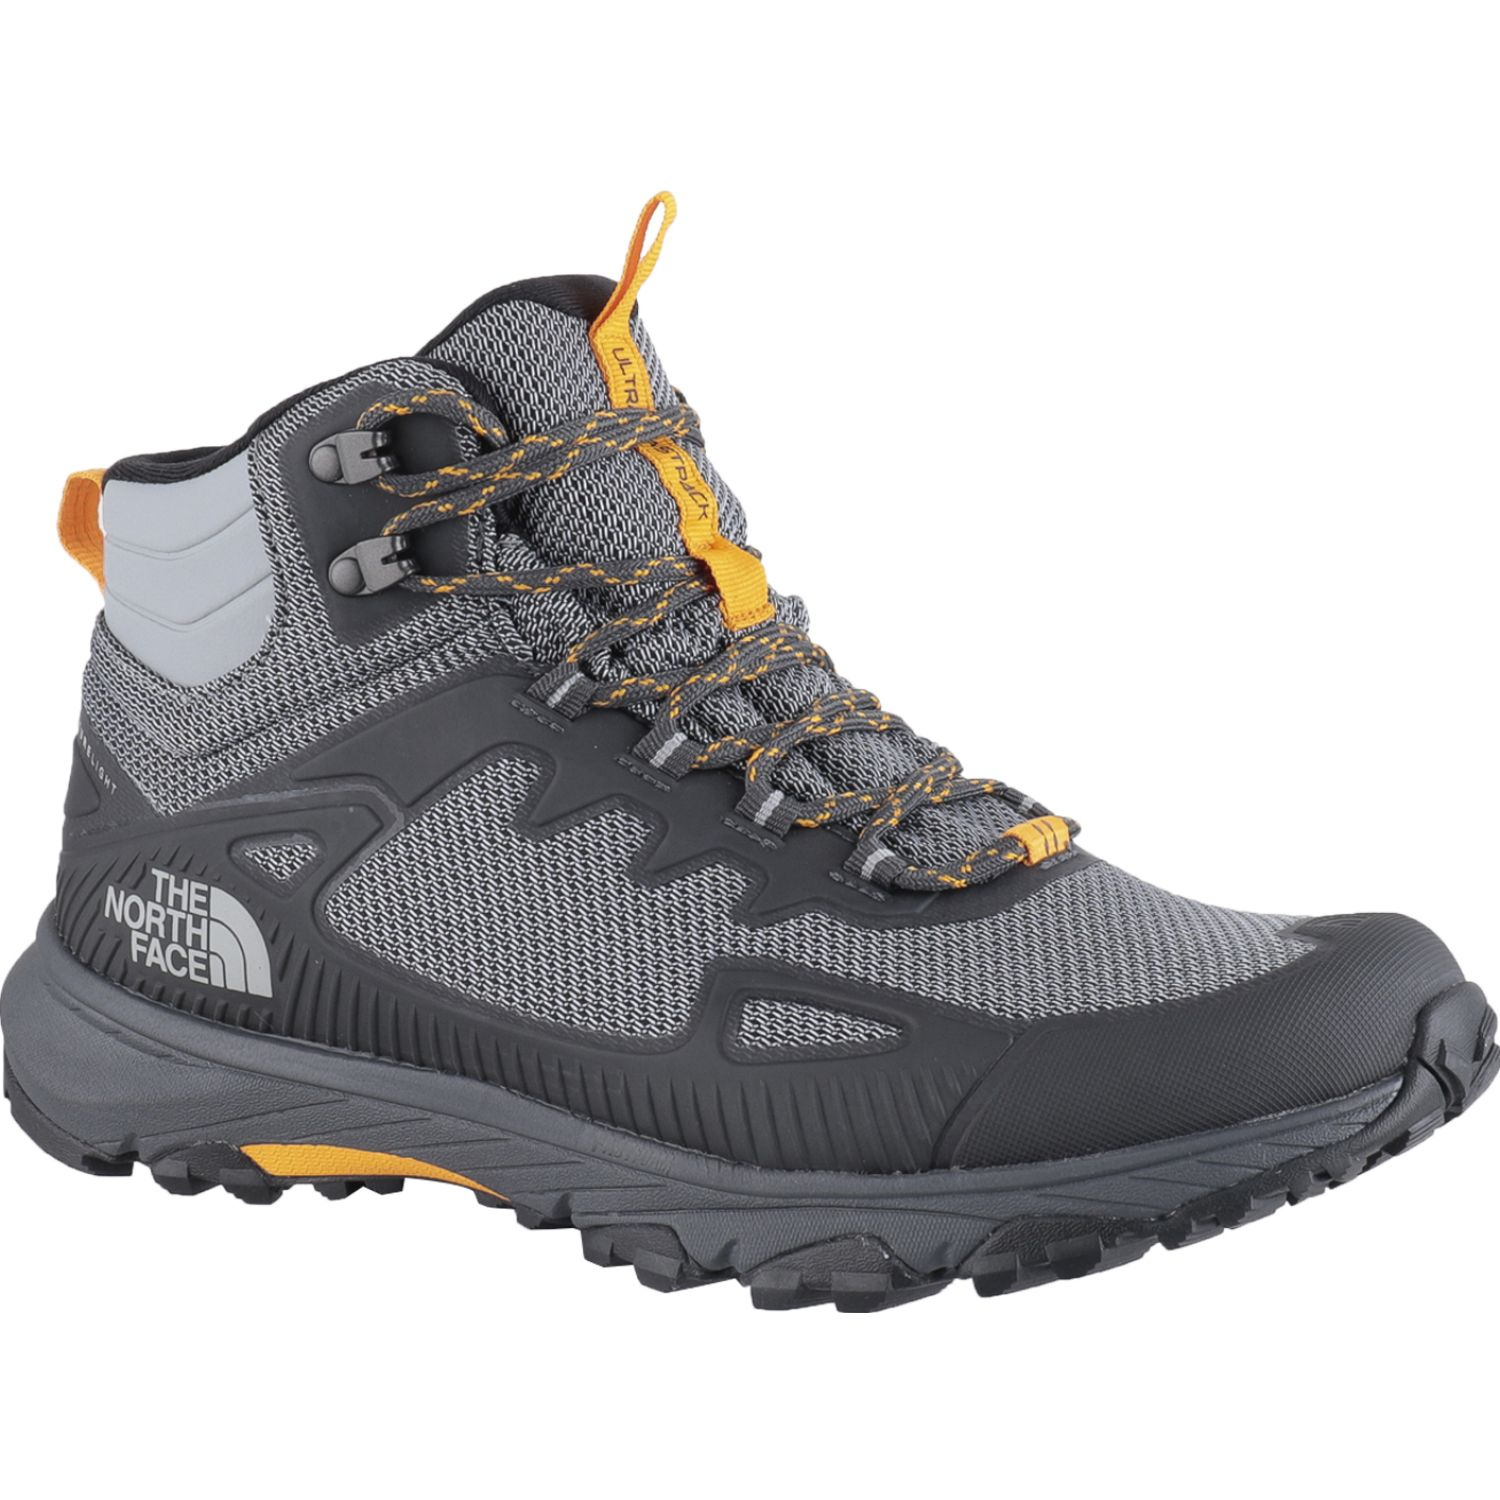 The North Face M Ultra Fastpack Iv Mid Futurelight NEGRO / GRIS Zapatos de senderismo